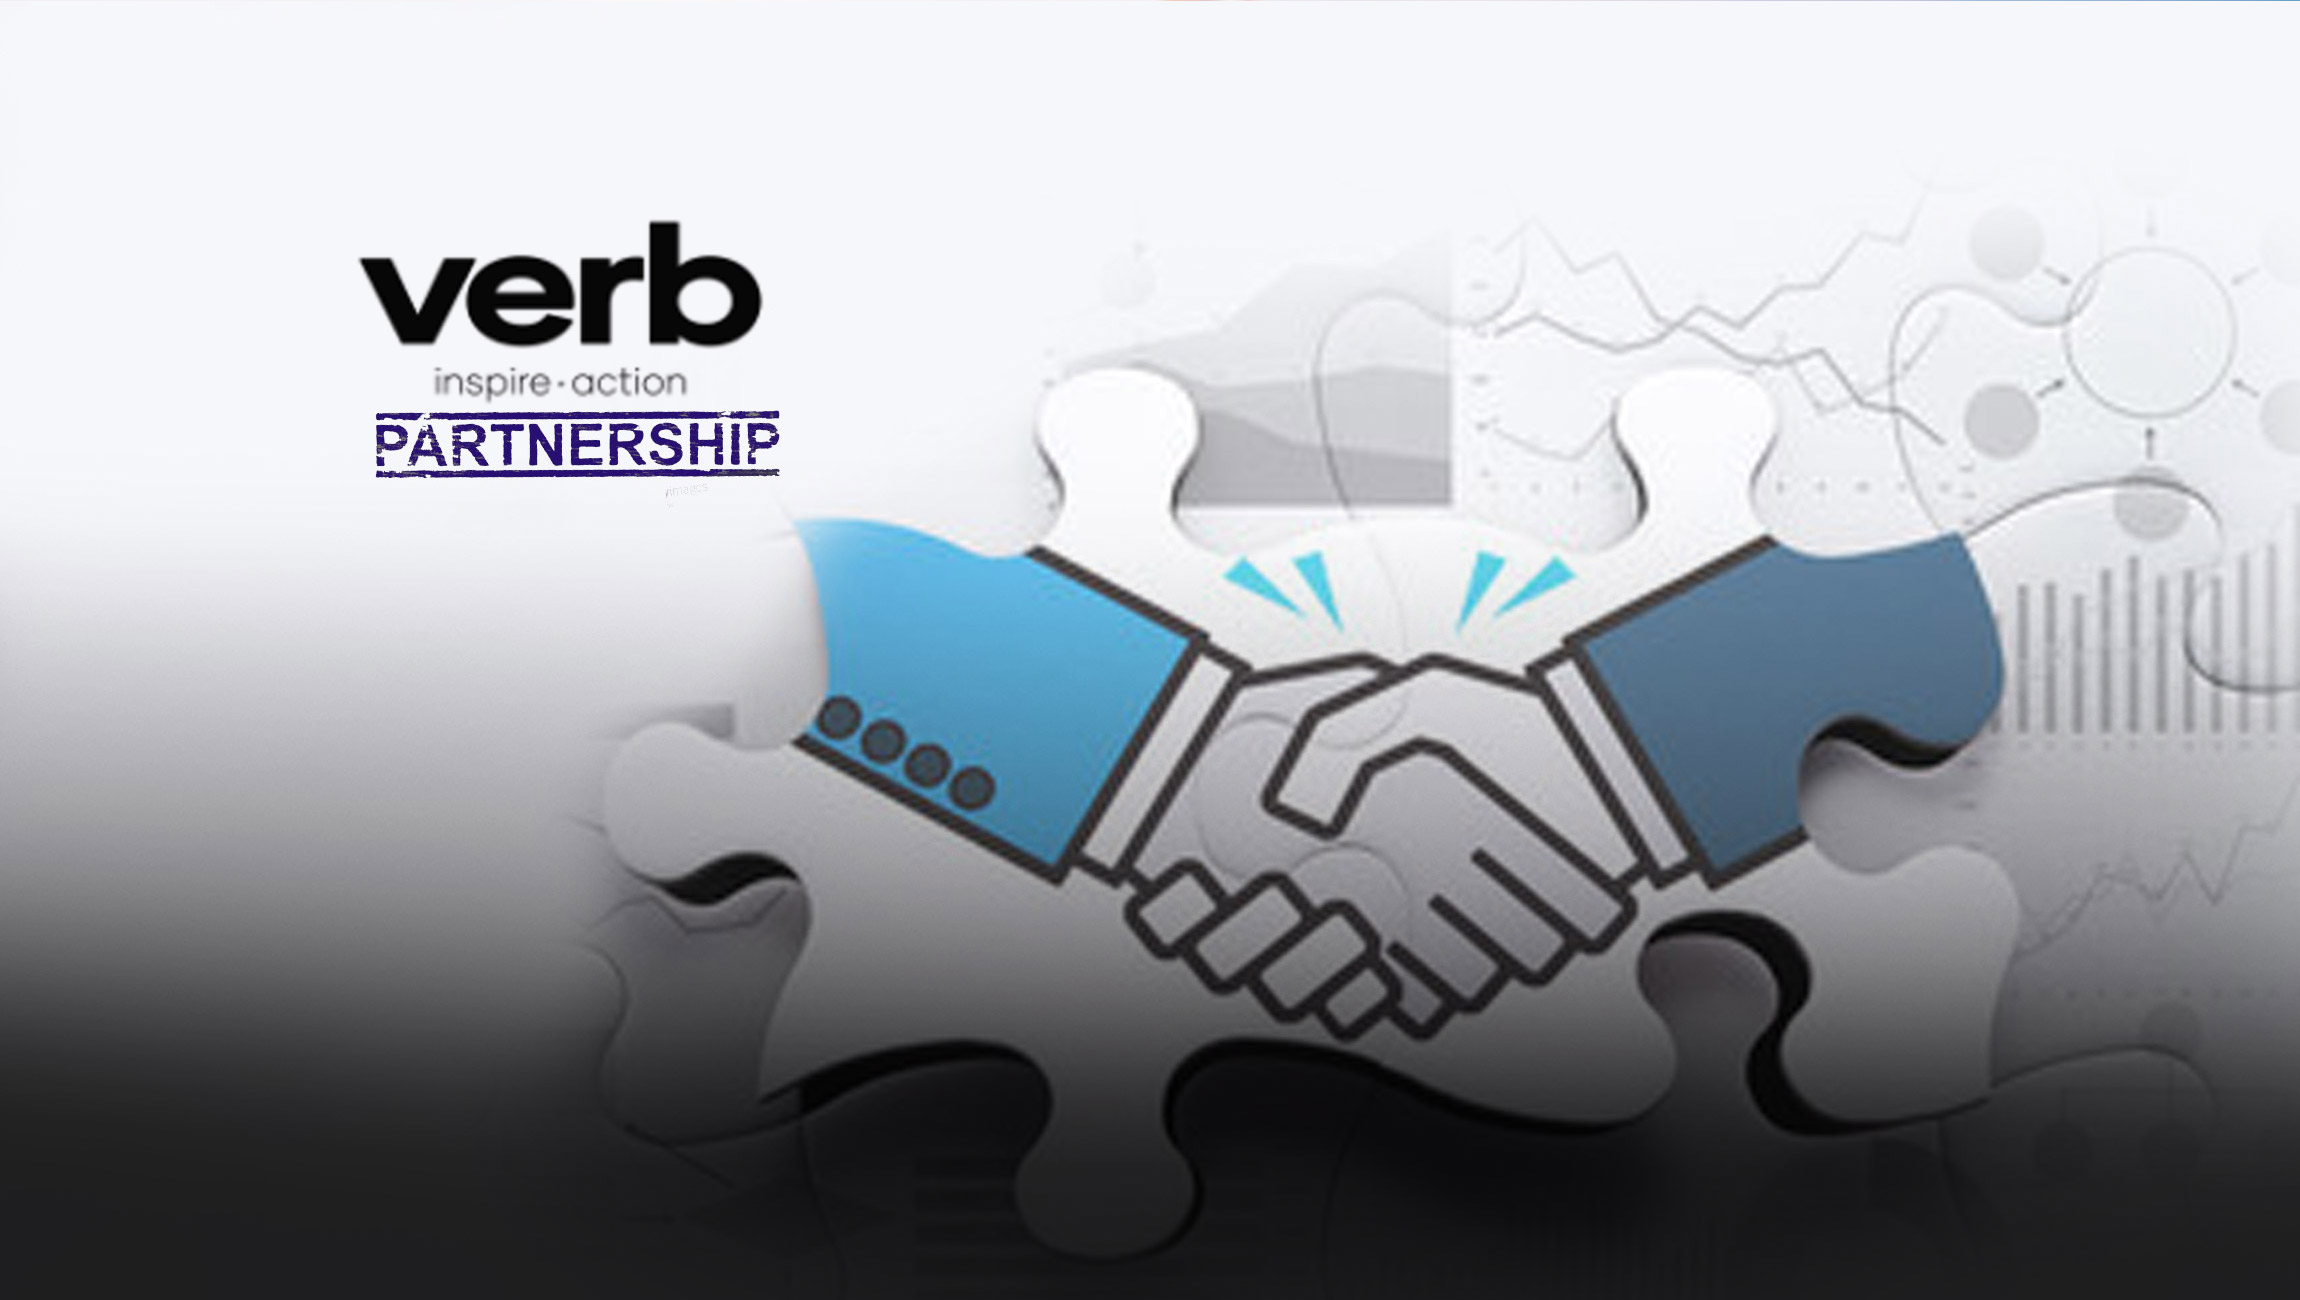 Verb Technology Partners with Direct-to-Consumer (D2C) Company NewAge, Inc. in Launching App for Independent Distributors to Increase Customer Engagement and Drive Sales Conversion Rates